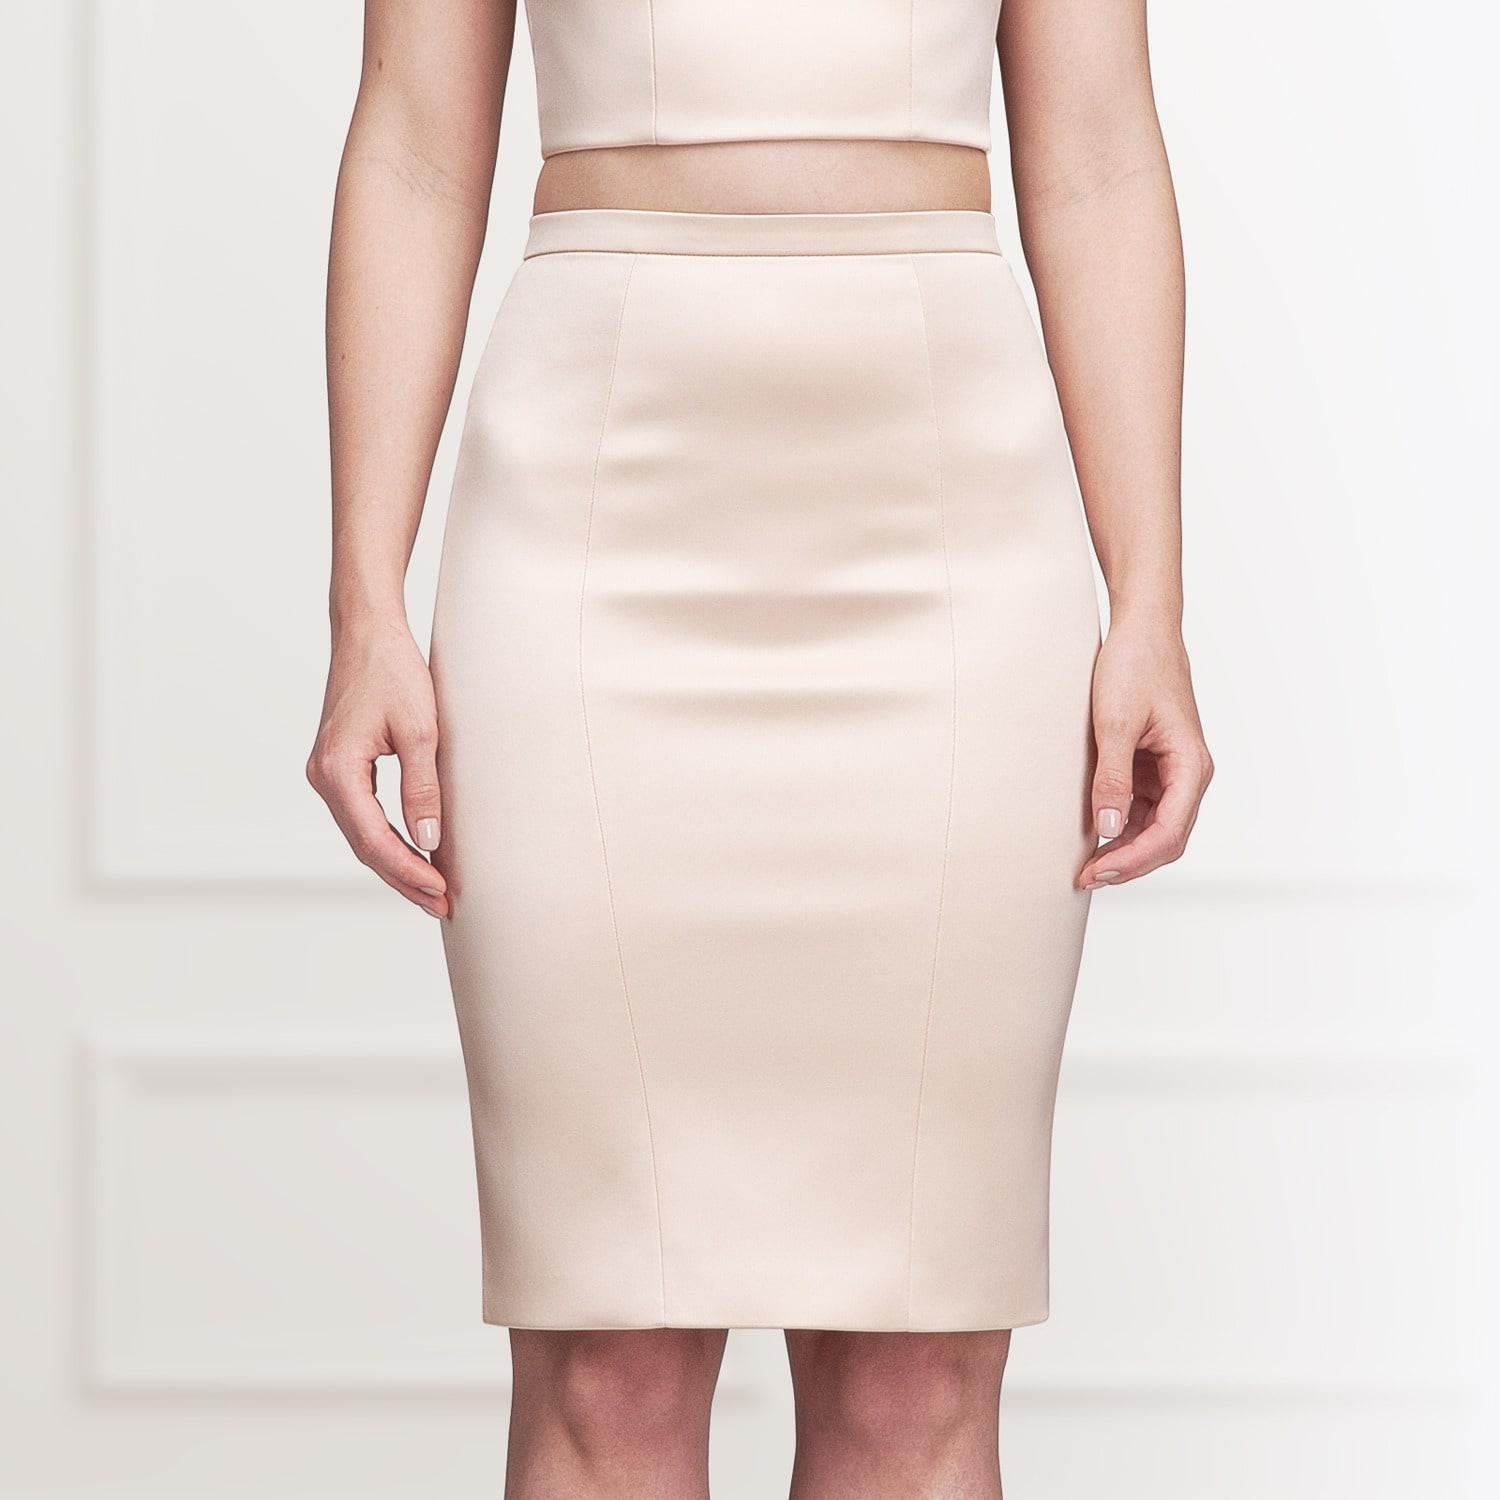 Alice Grace Peach Strapless Crop Top   Pencil Skirt Two Piece Dress ... 23b57b9a3c